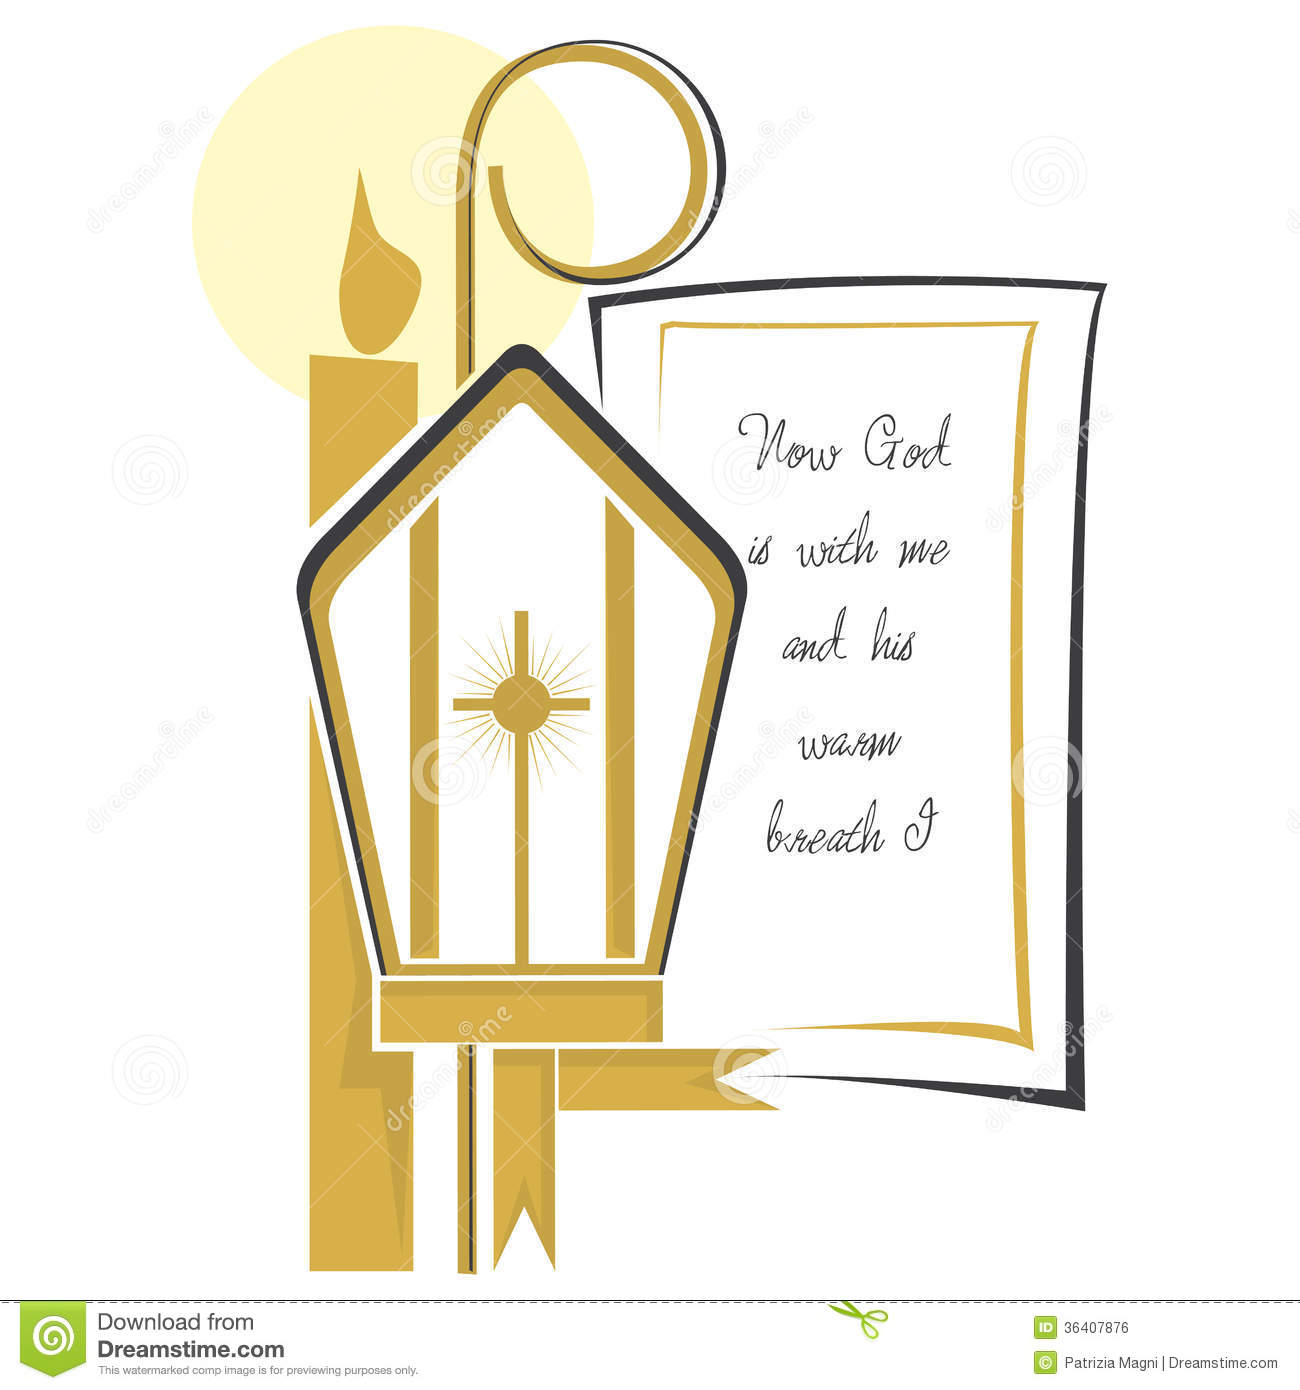 Religion stock vector. Illustration of prayer, symbol.